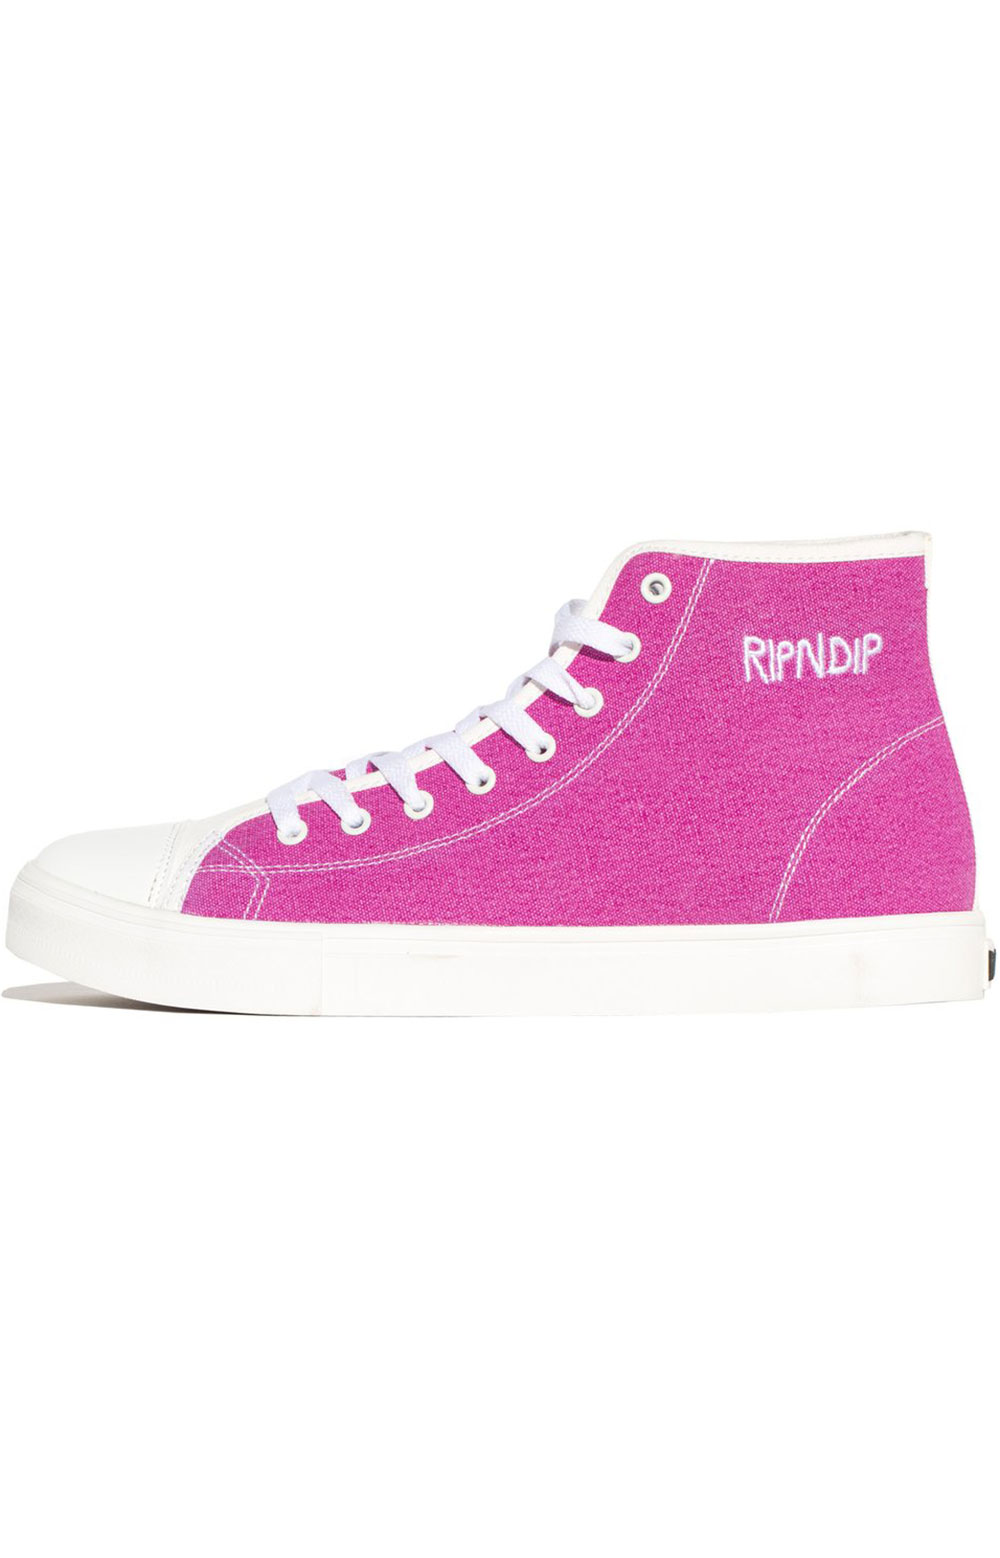 Lord Nermal UV Activated High Tops - Blue/Fuschia  3